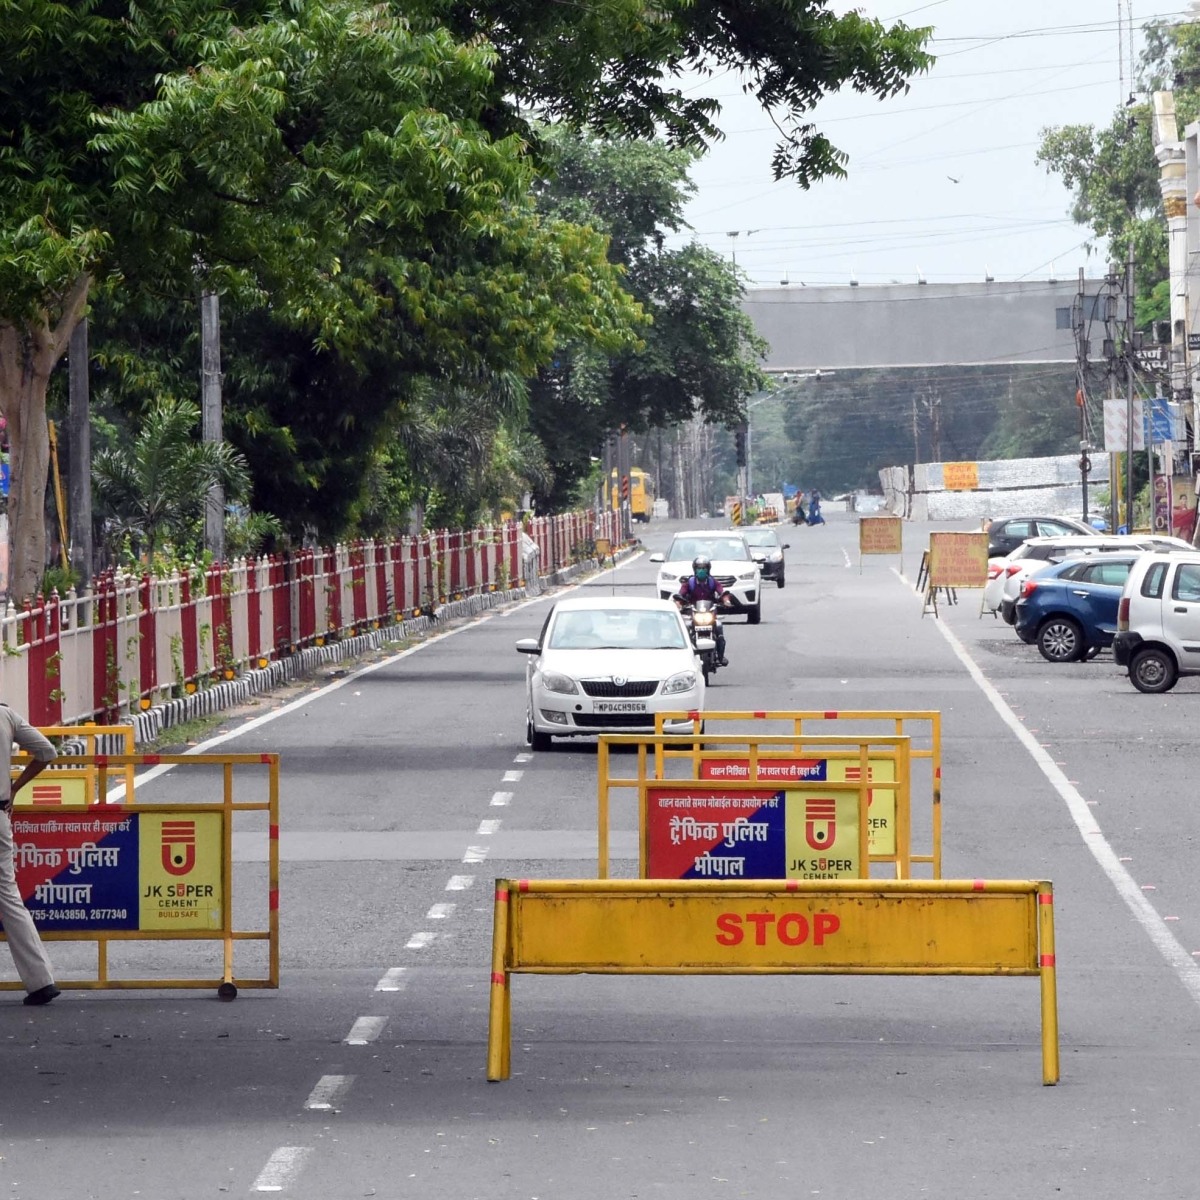 Sunday Curfew in Bhopal: Reliving the old days of lockdown, norms stricter